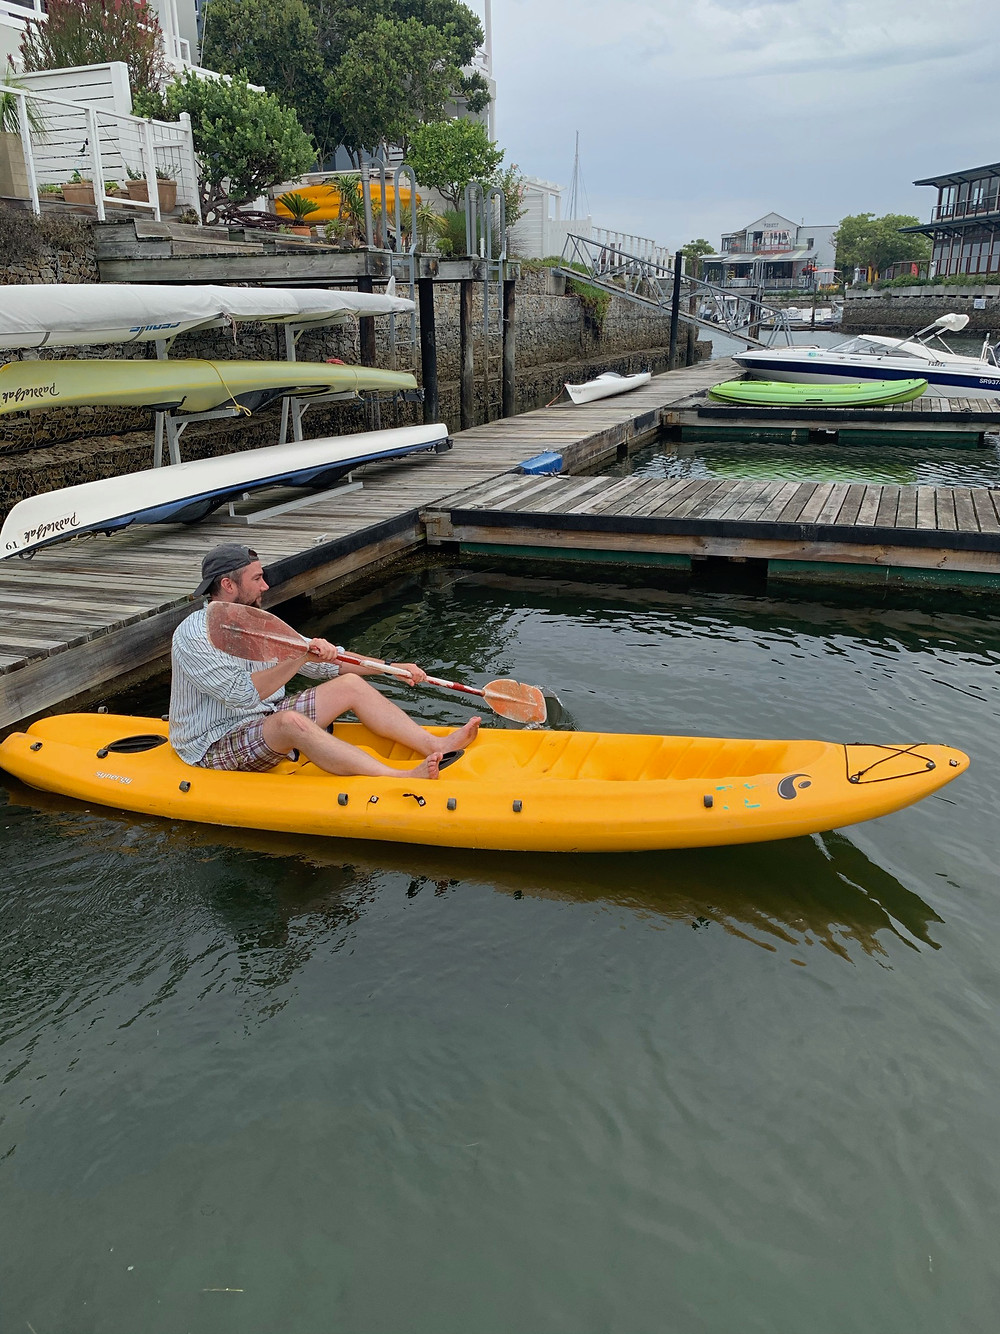 Chipp - not so smoothly - navigating to pick up Jenna for an afternoon kayak through the Thesen Island canals